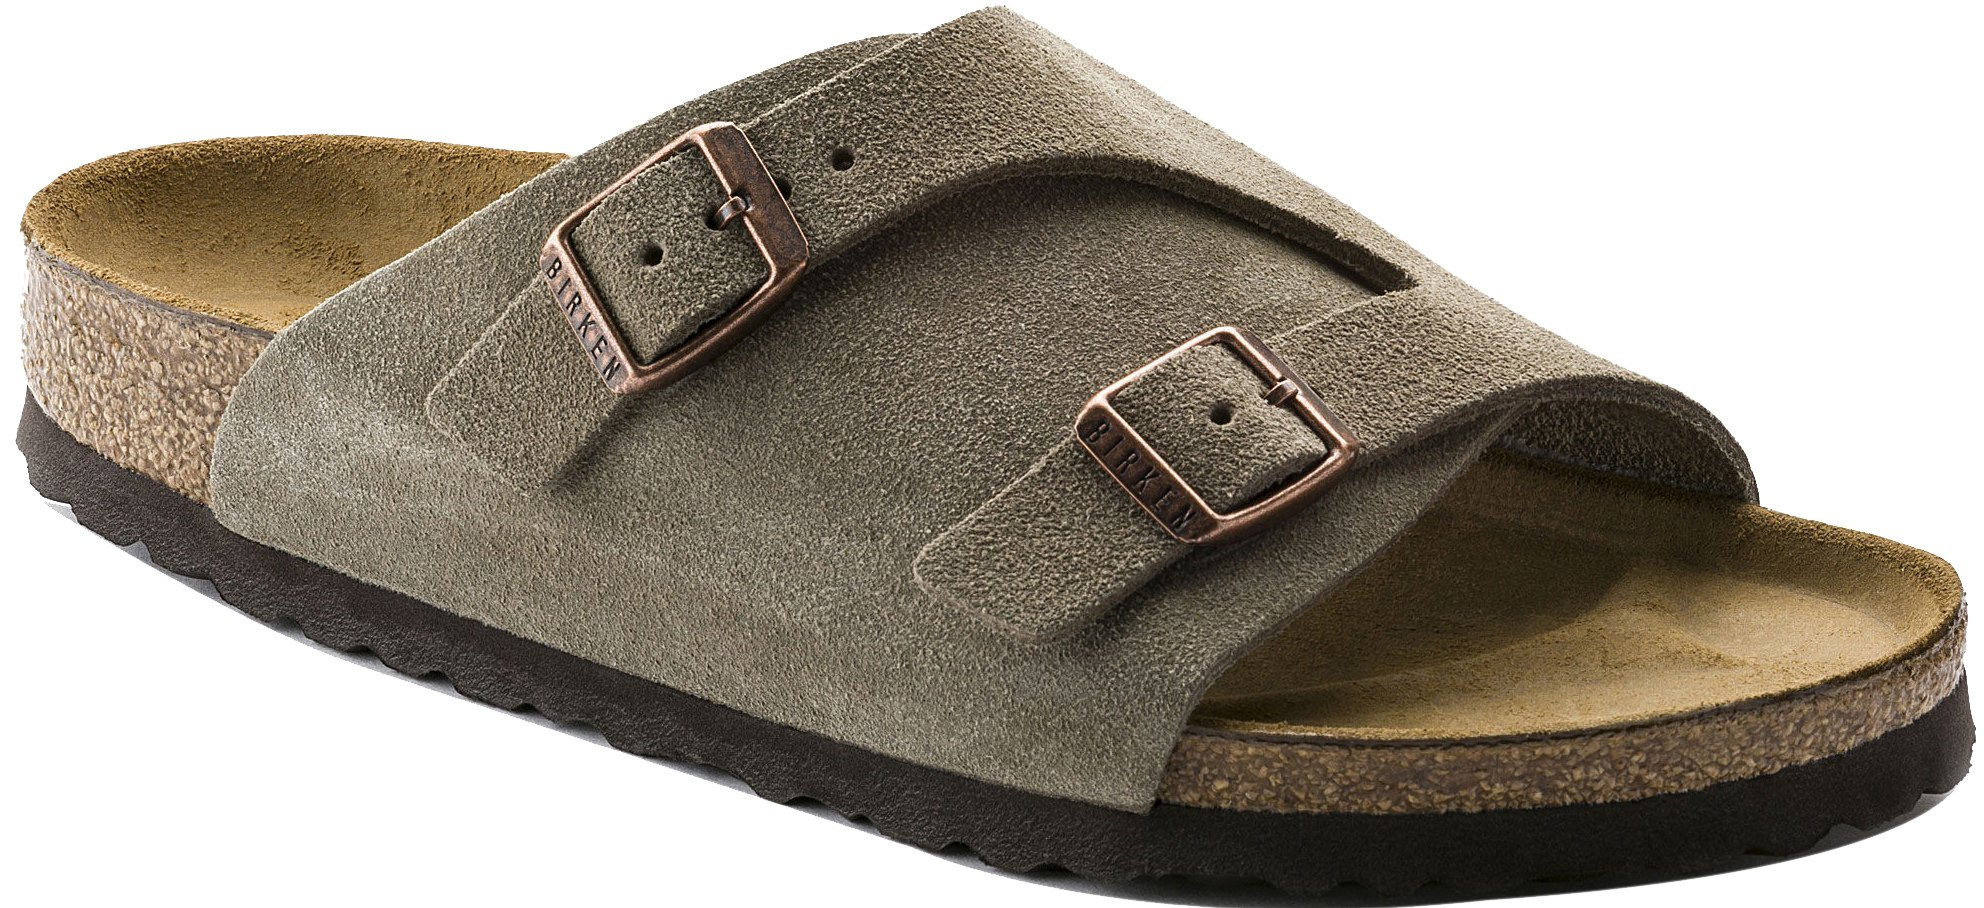 Birkenstock Women's Zurich Wool/Leather Sandal,Taupe,41 EU/10 N US